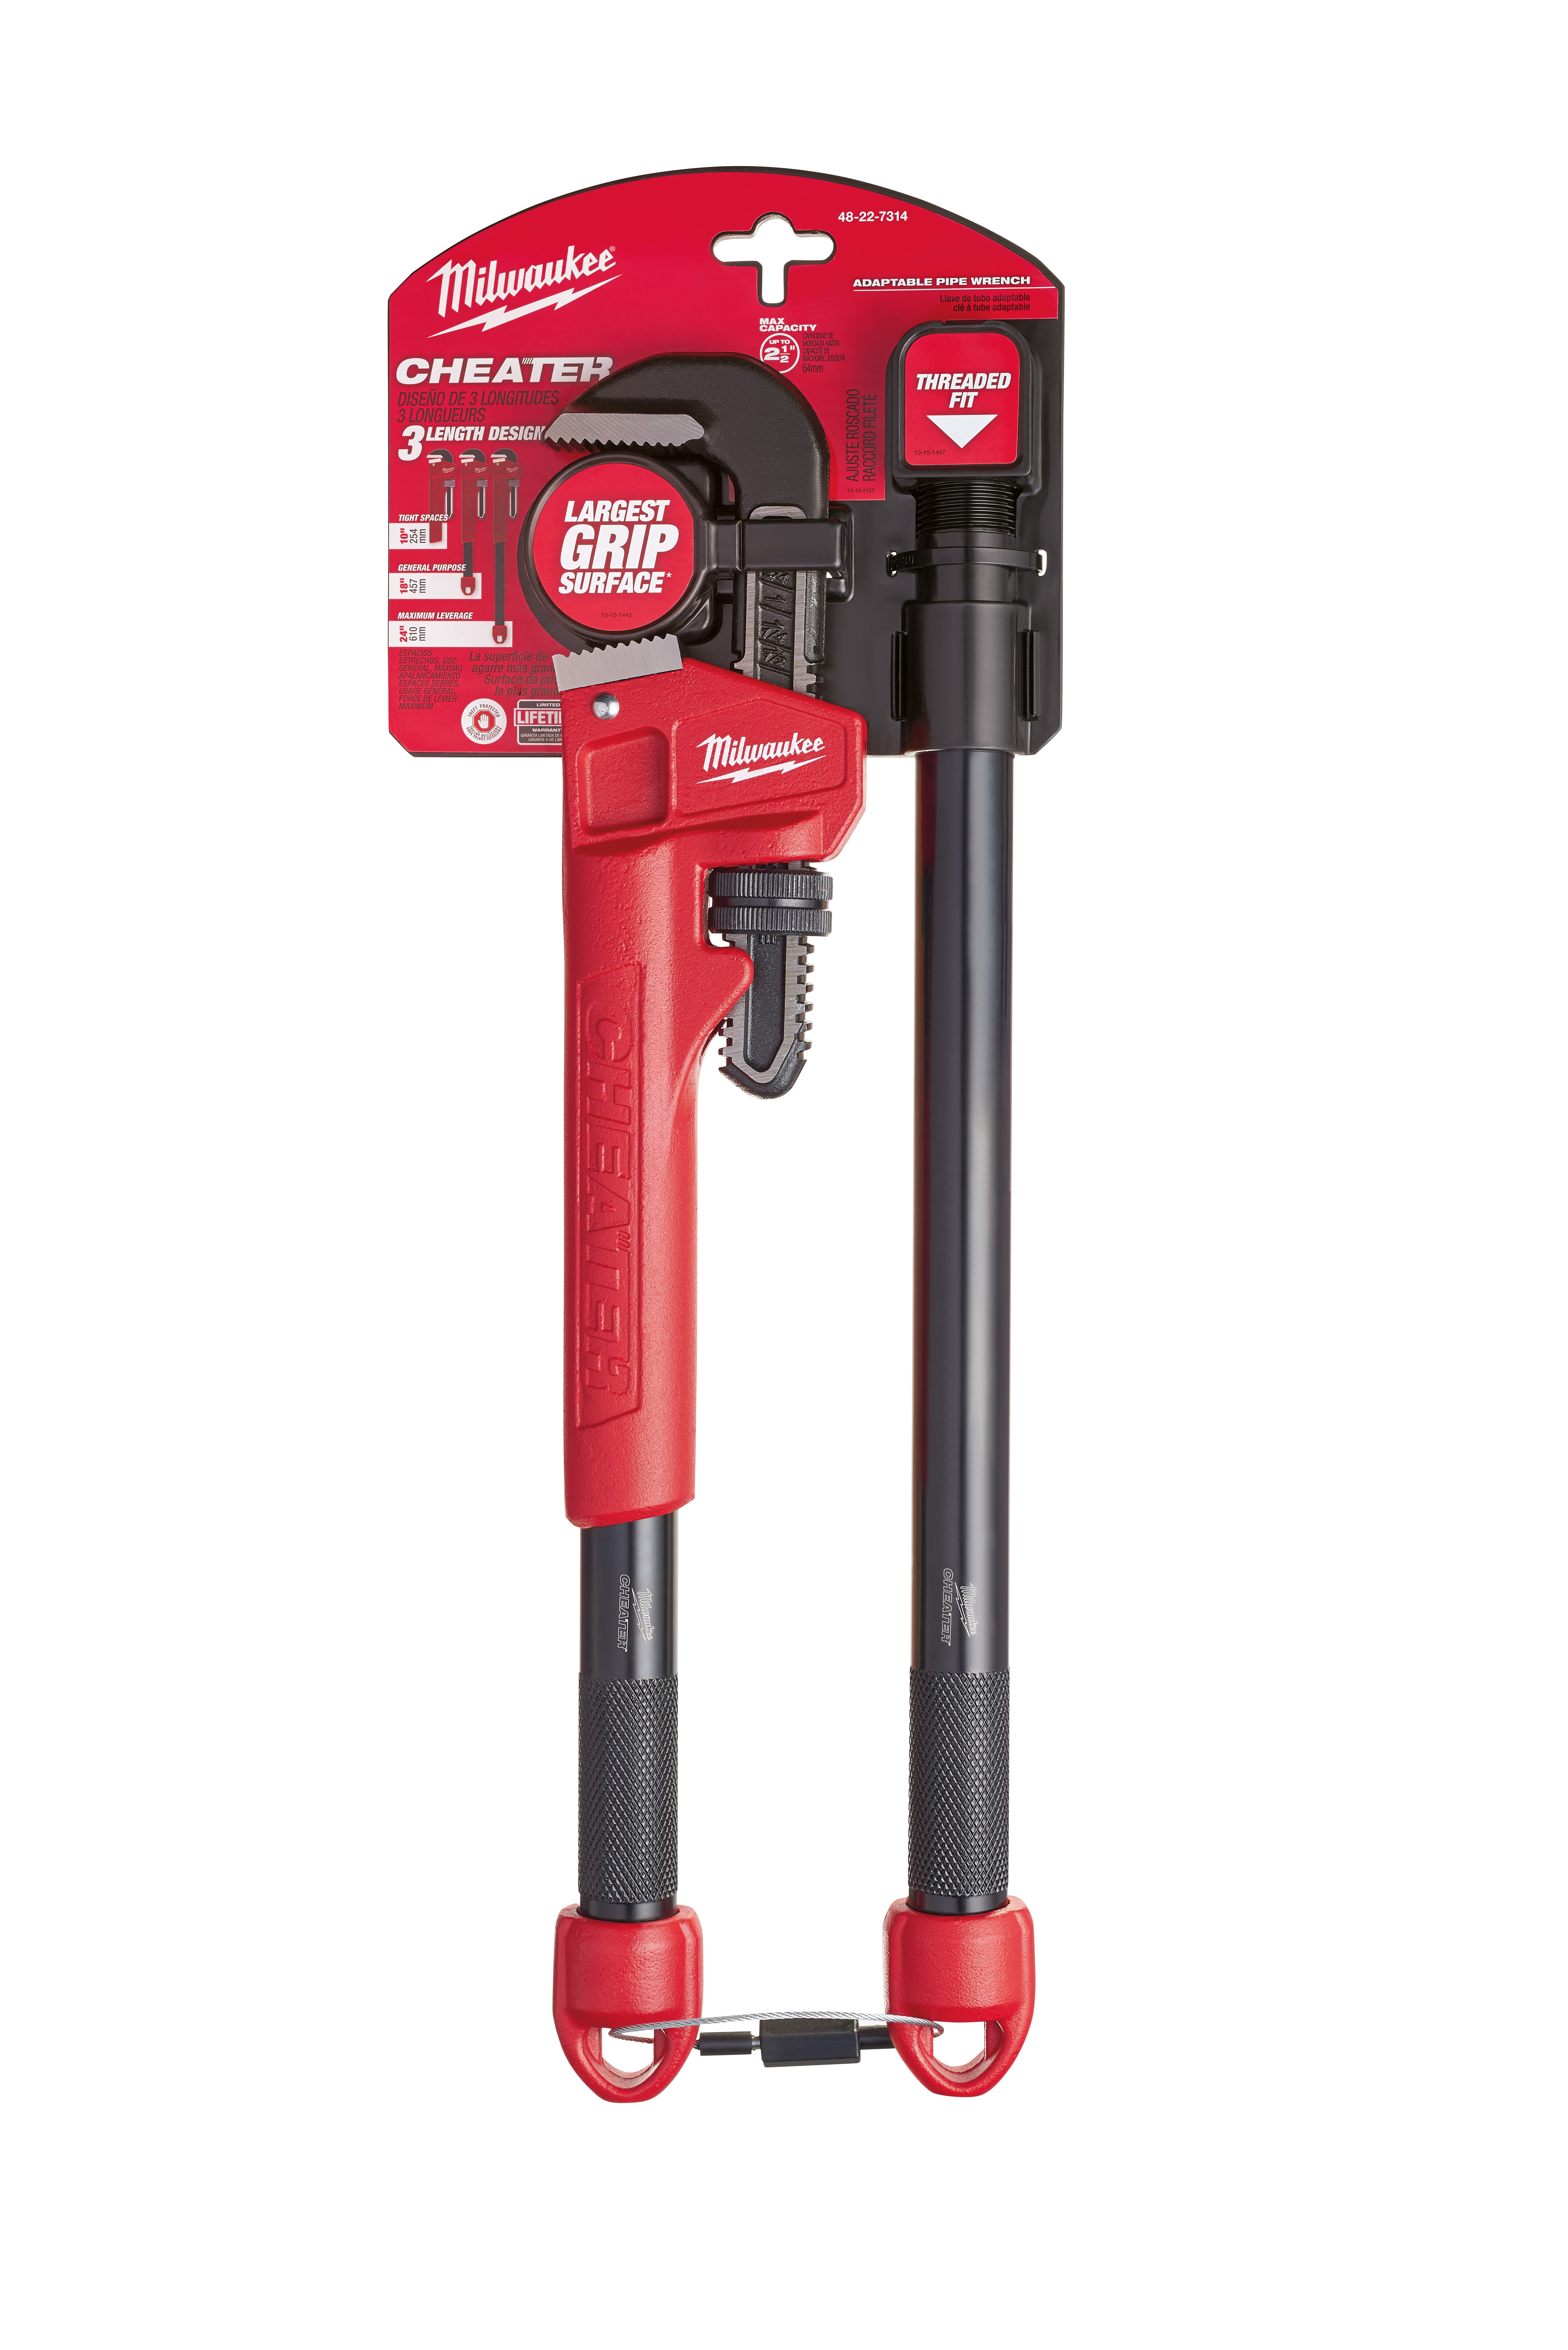 Milwaukee® OVERBITE JAW ™ 48-22-7314 Adaptable Pipe Wrench, 21.8 in OAL, Hook Jaw, Steel Handle